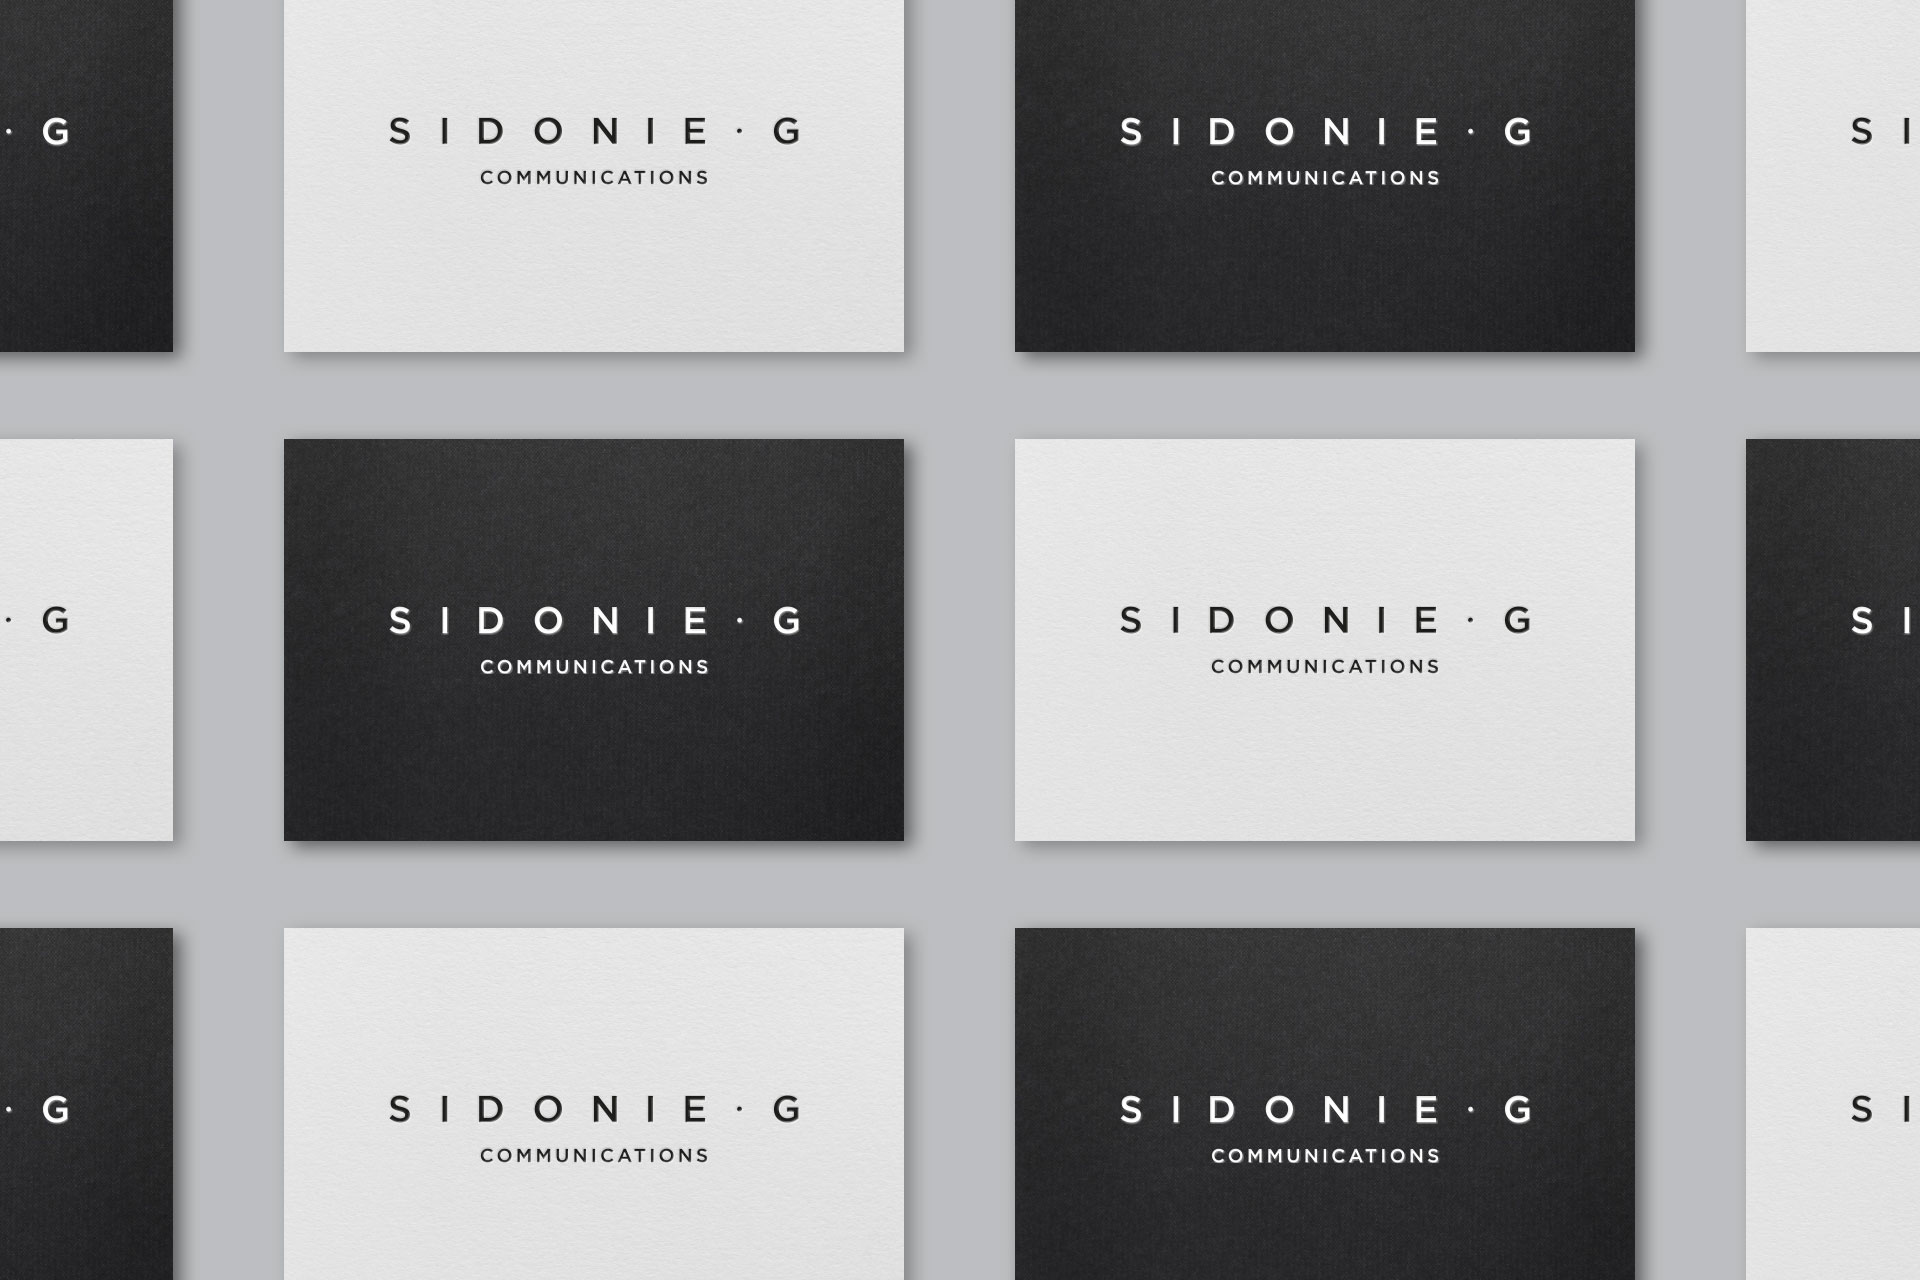 Sidonie G Communications 10